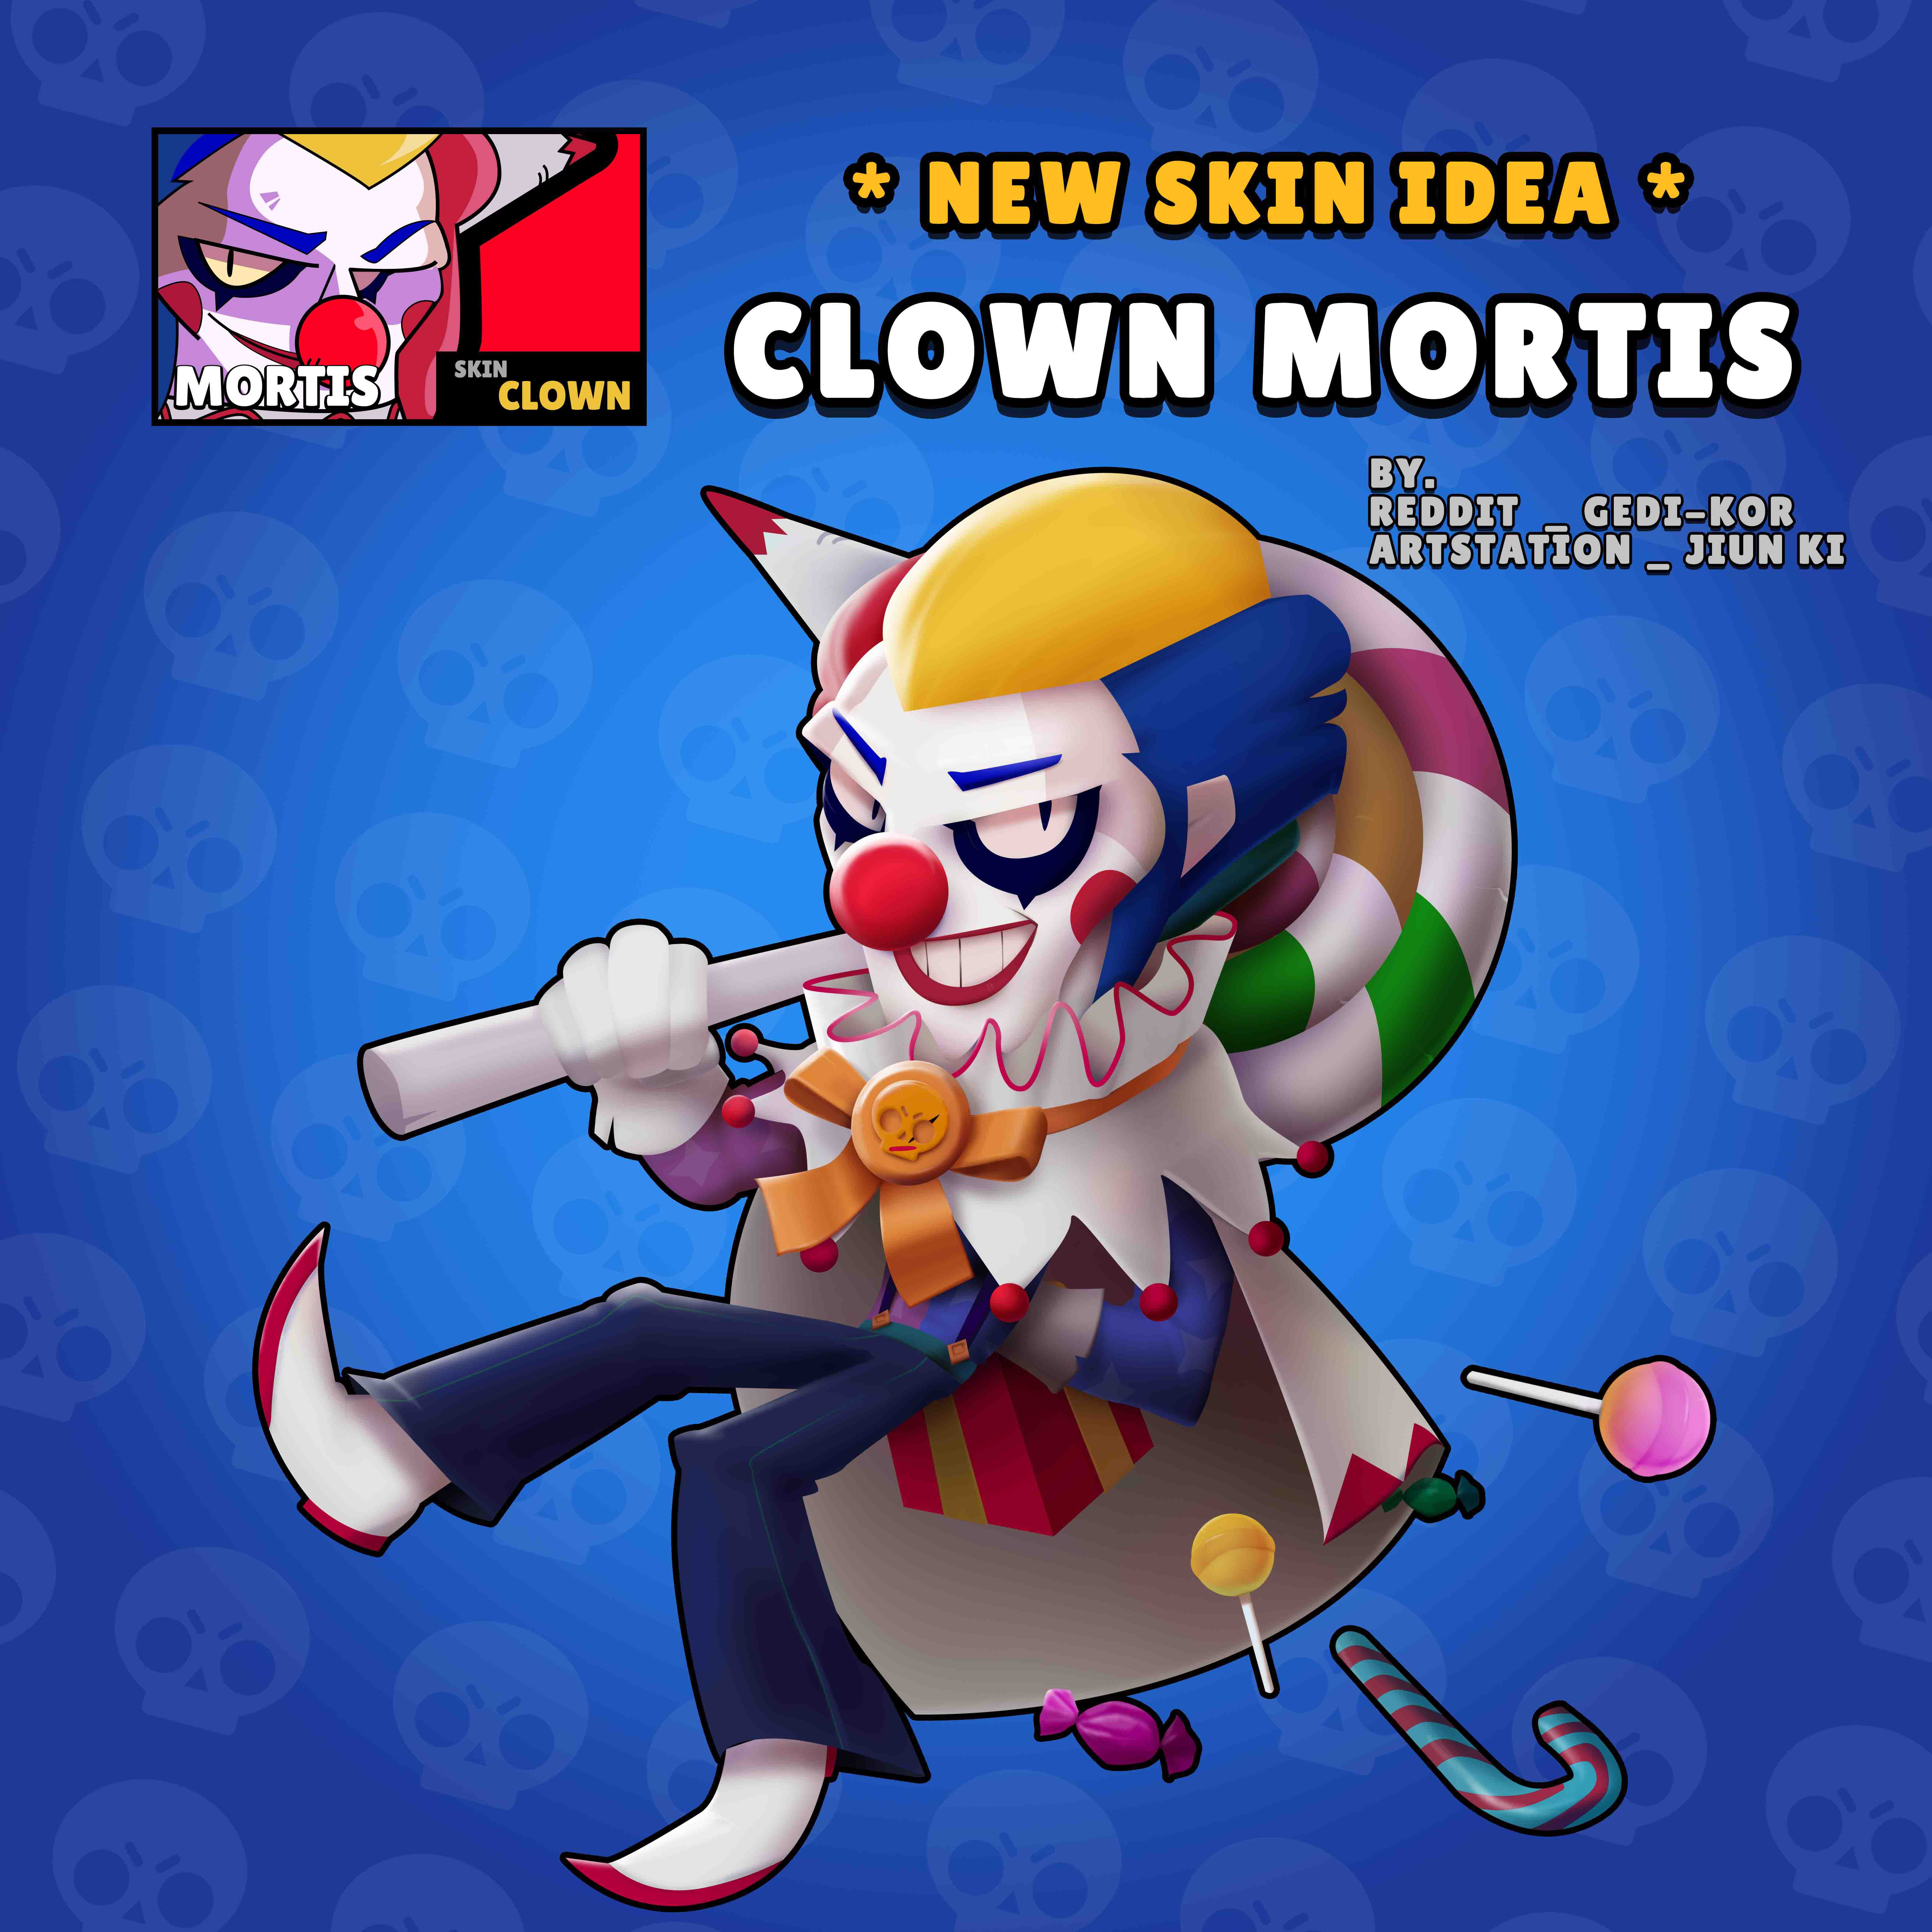 clown mortis skin idea